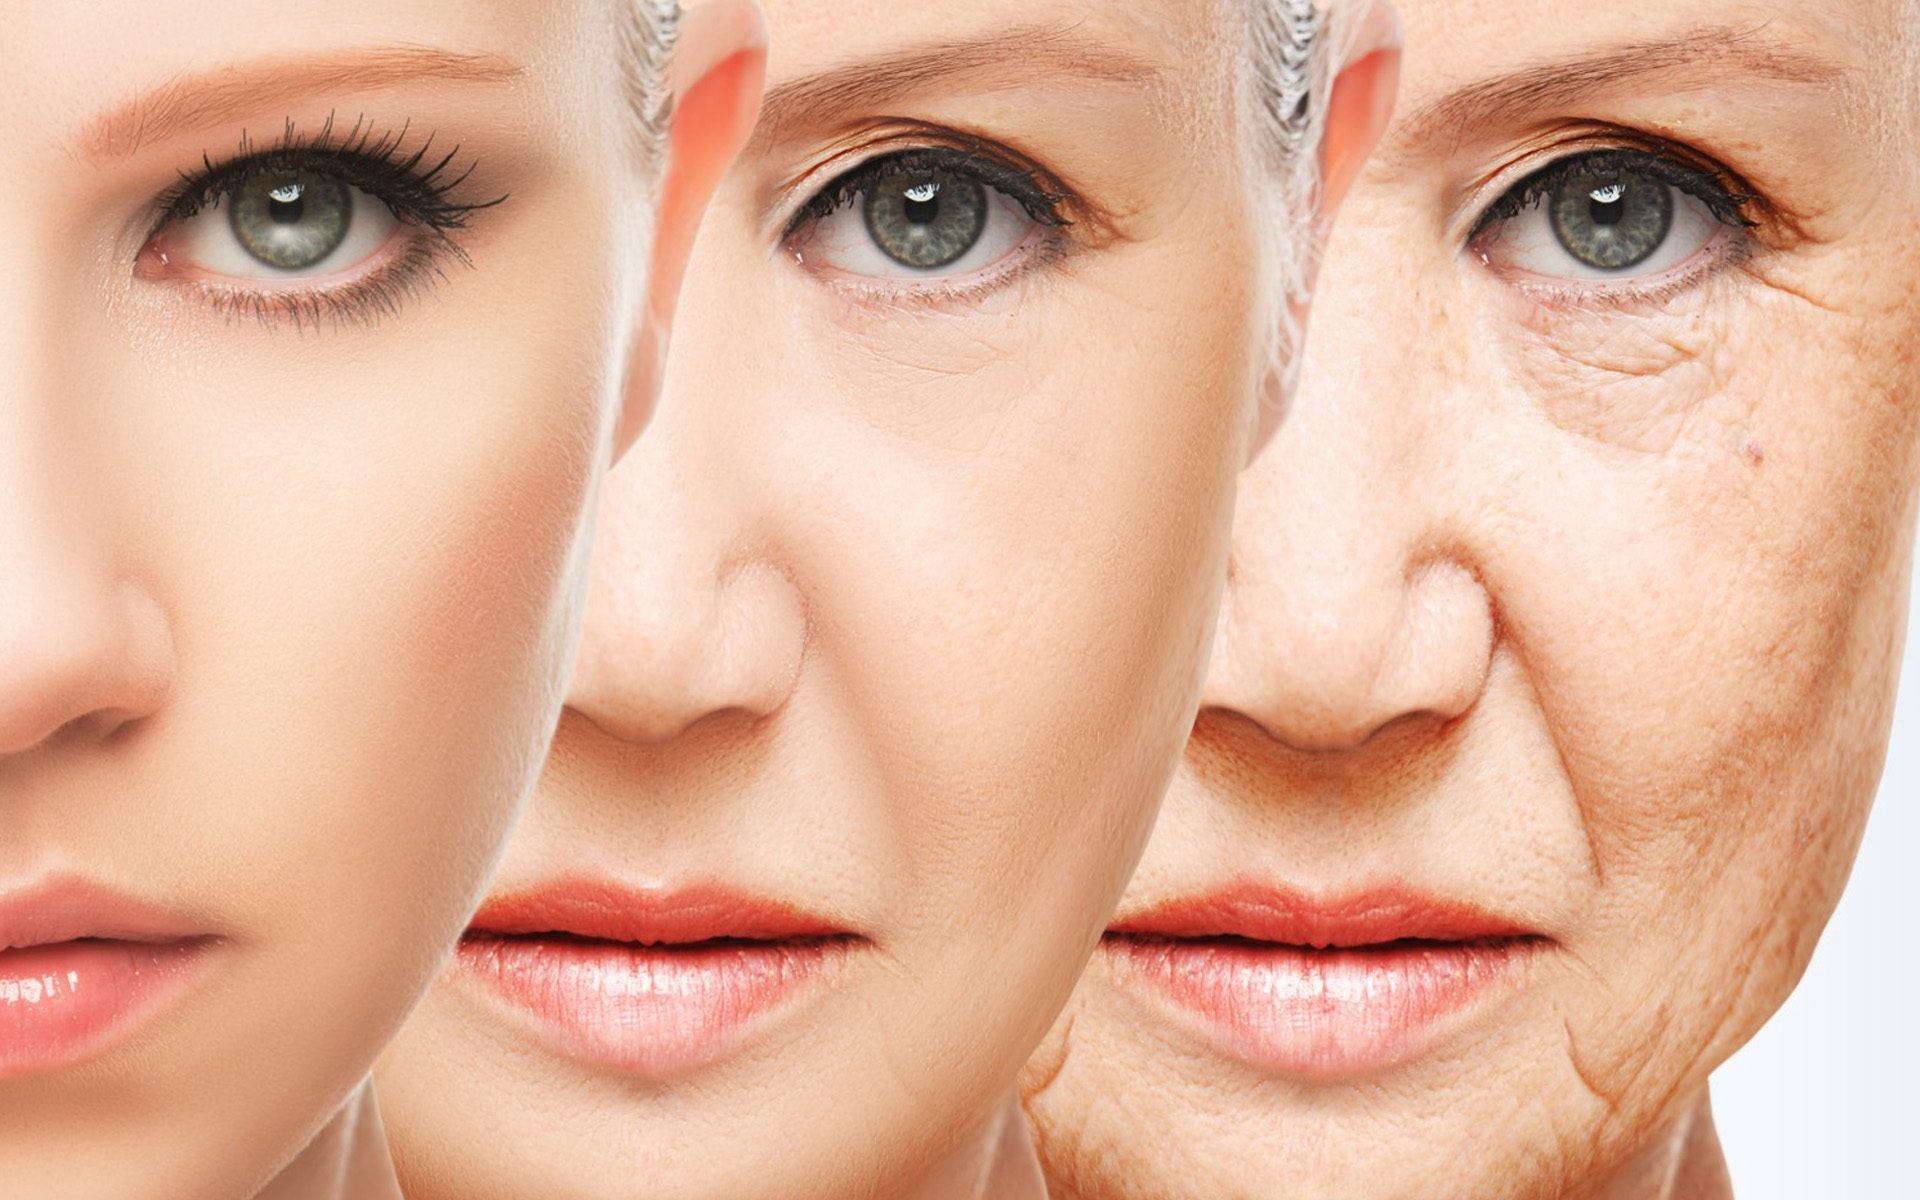 Do's & Don'ts: How To Stop Aging Using Anti-Aging Skin Care